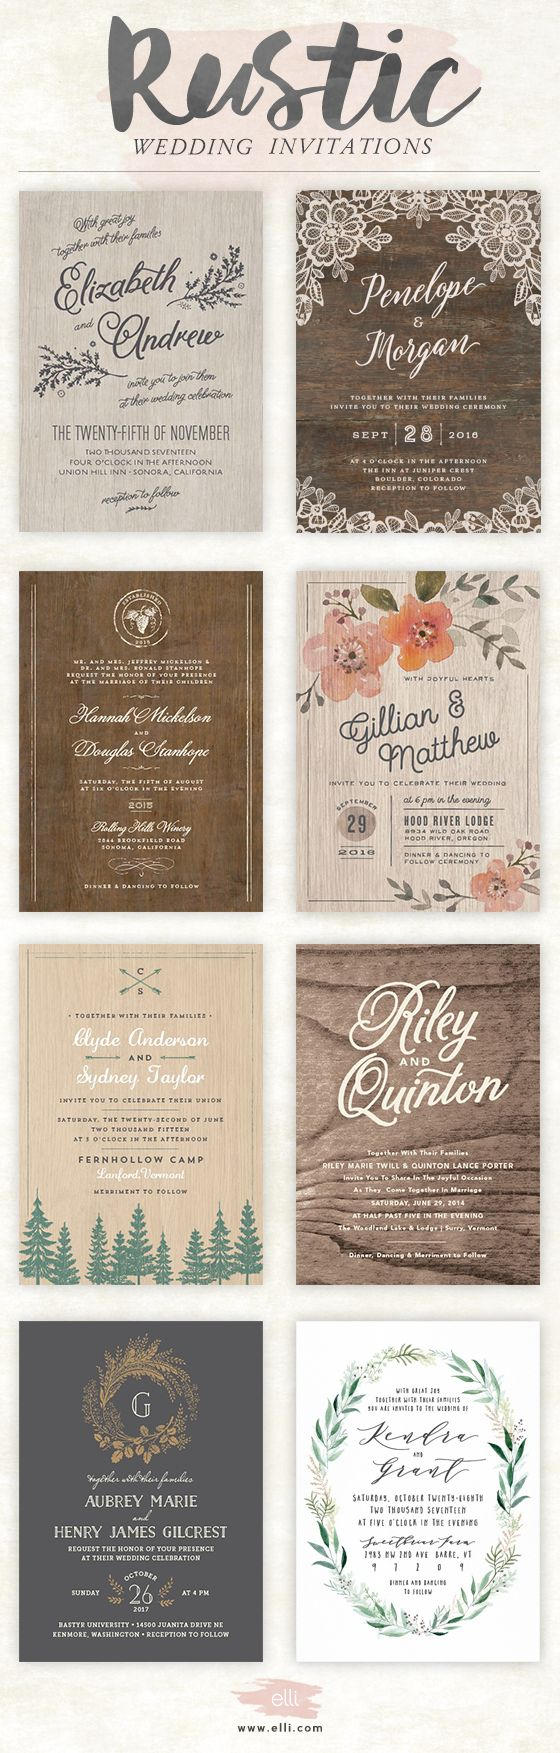 real simple unique wedding invitations%0A Find rustic wedding invitations at Elli com  Free customization and  unlimited proofs